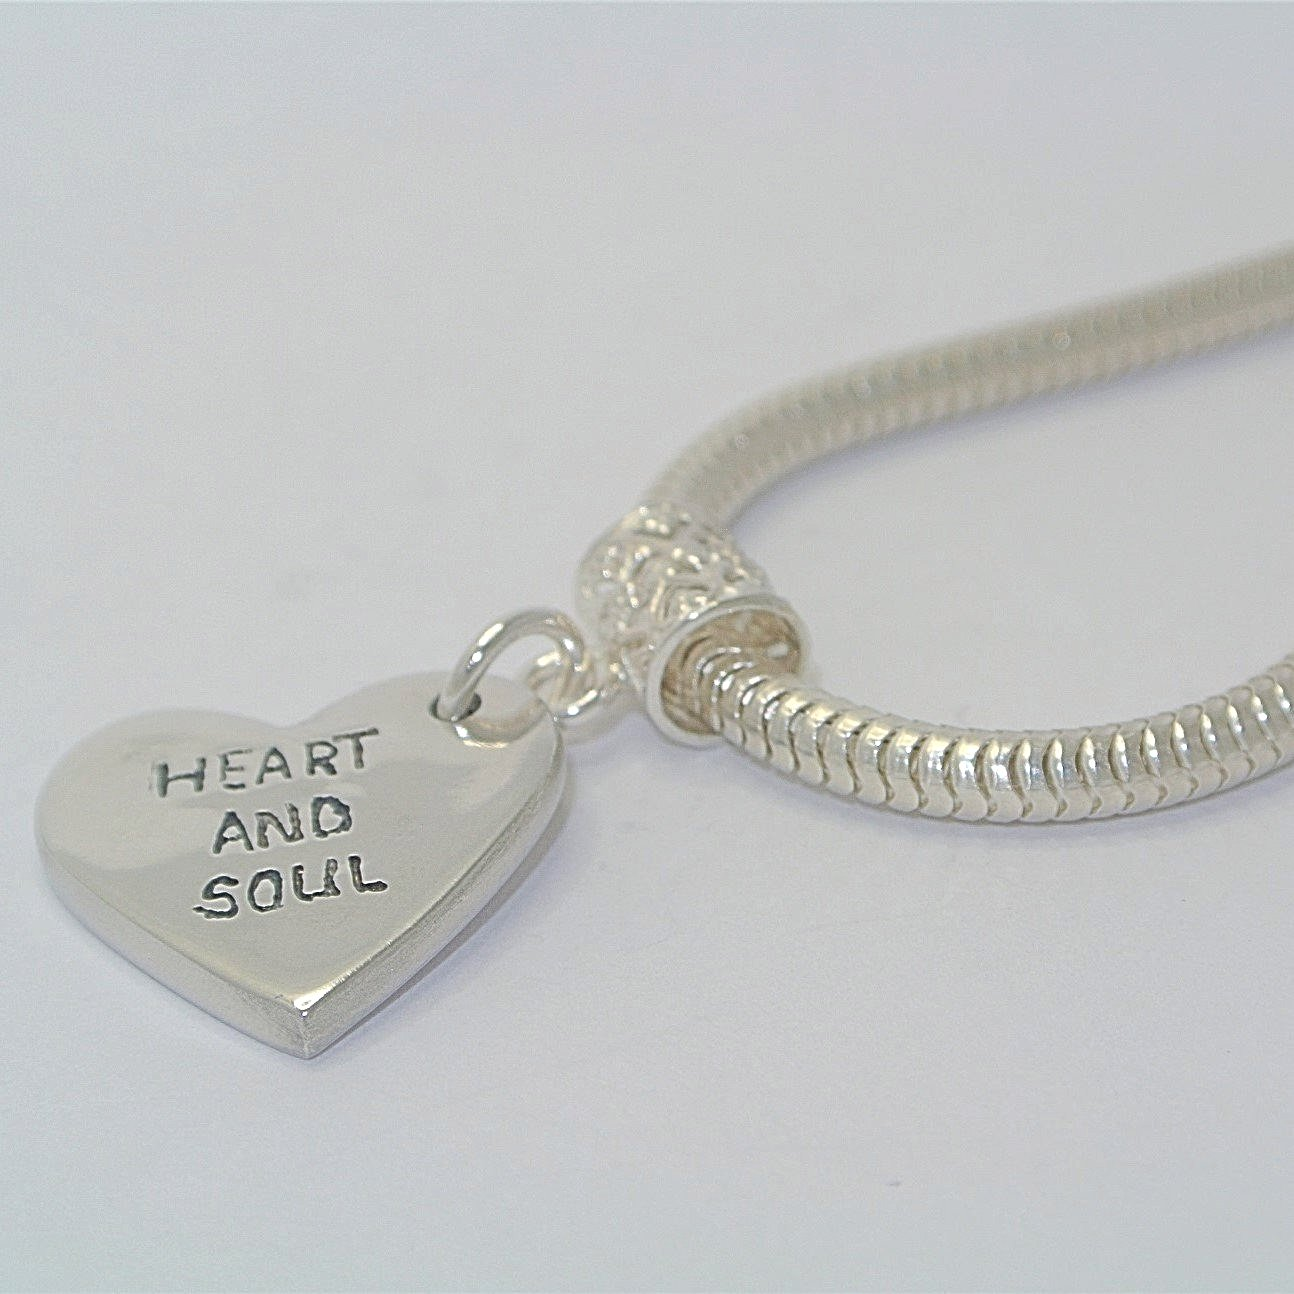 Full Fingerprint Heart Sterling Silver Fingerprint Jewellery